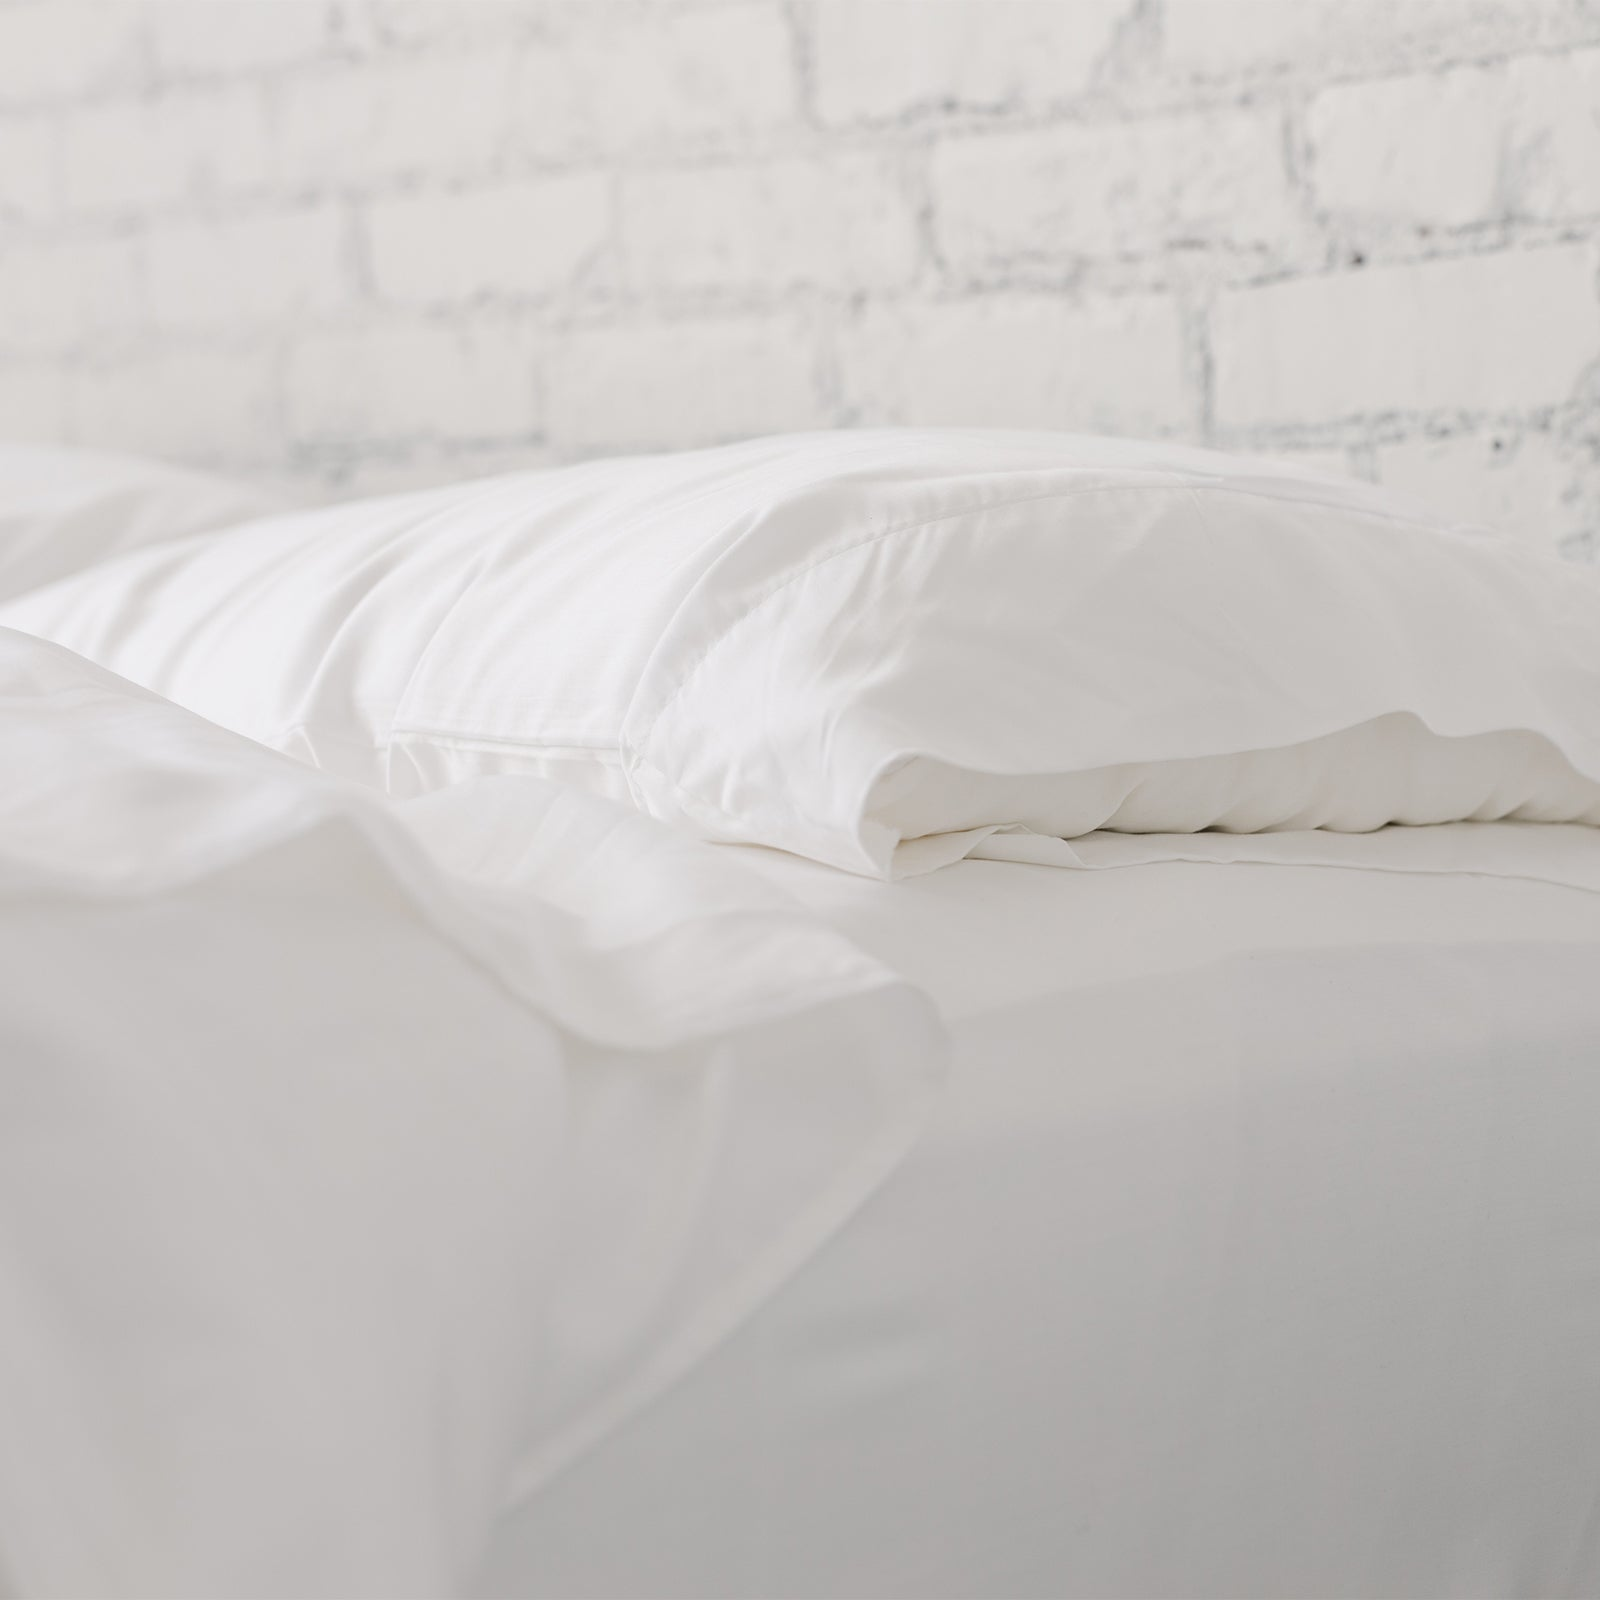 silk pillows on a bed